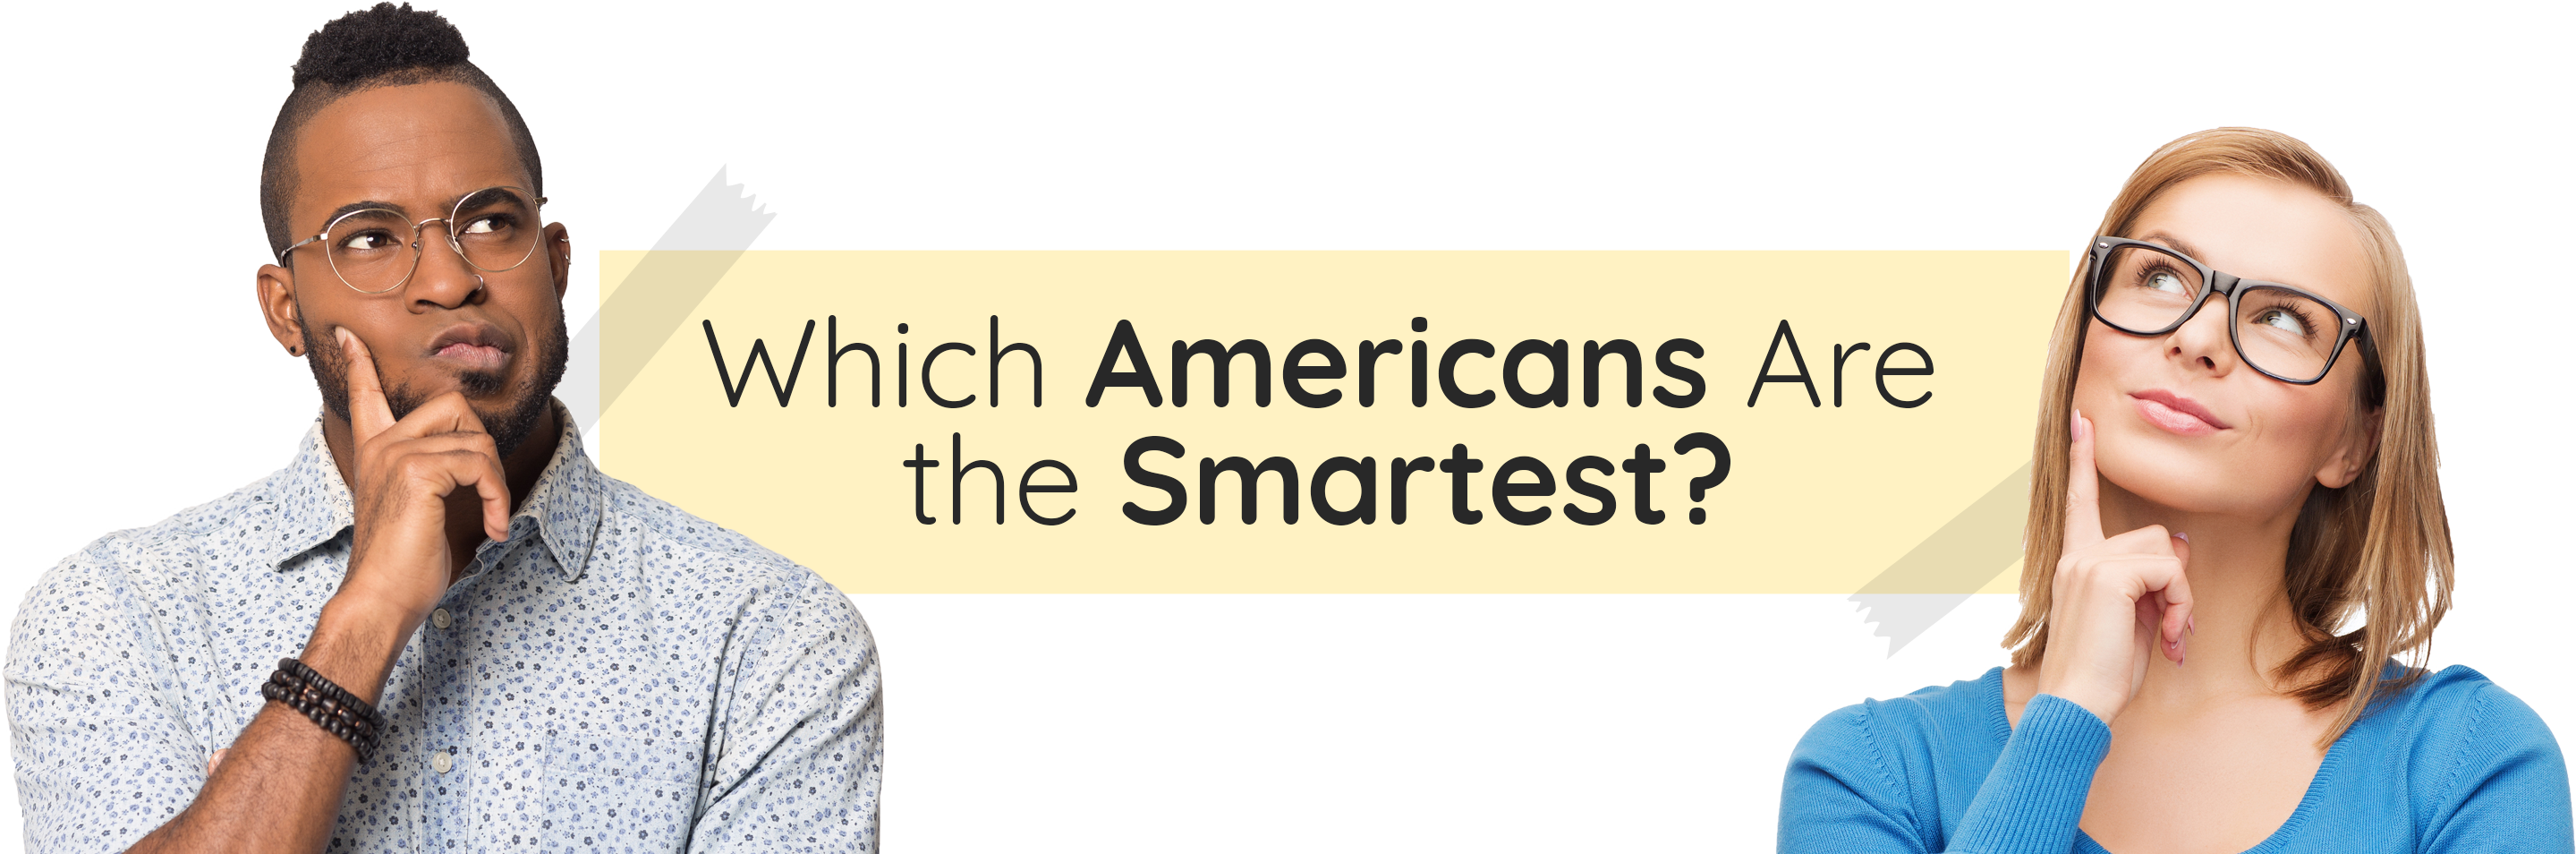 Which Americans Are the Smartest?